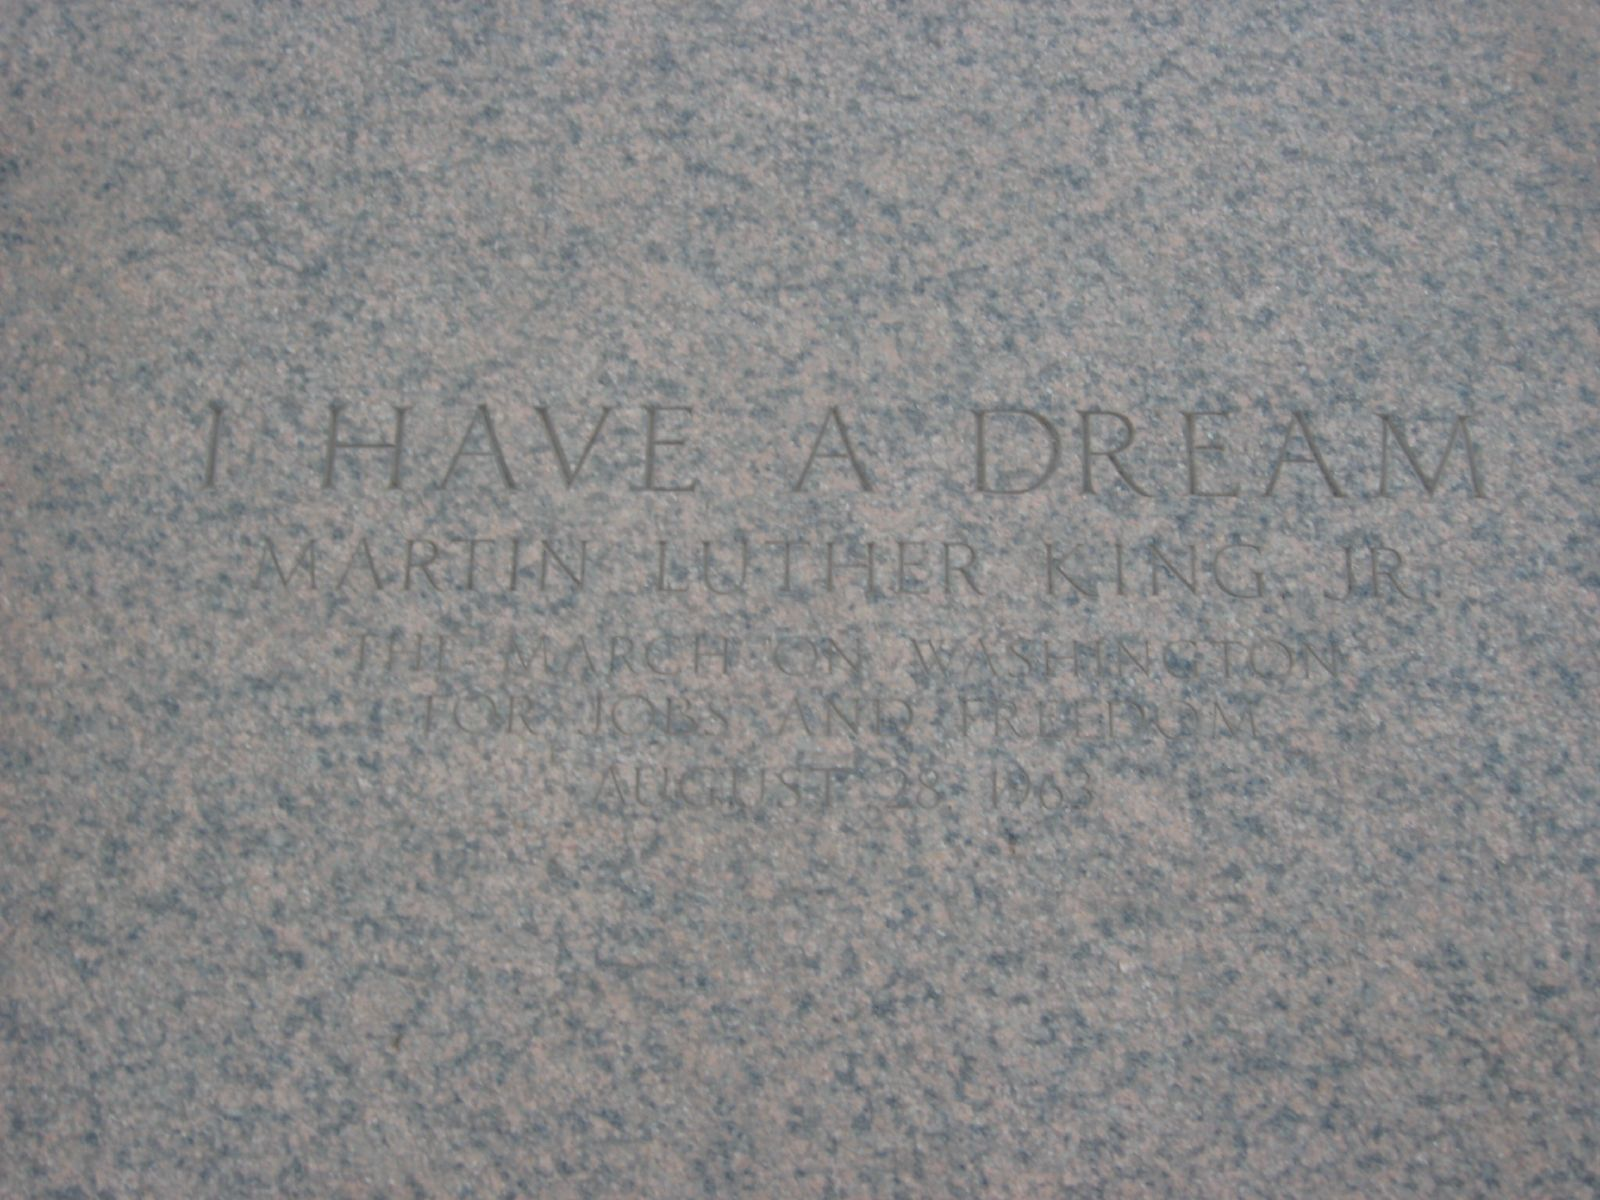 Antithesis in the i have a dream speech